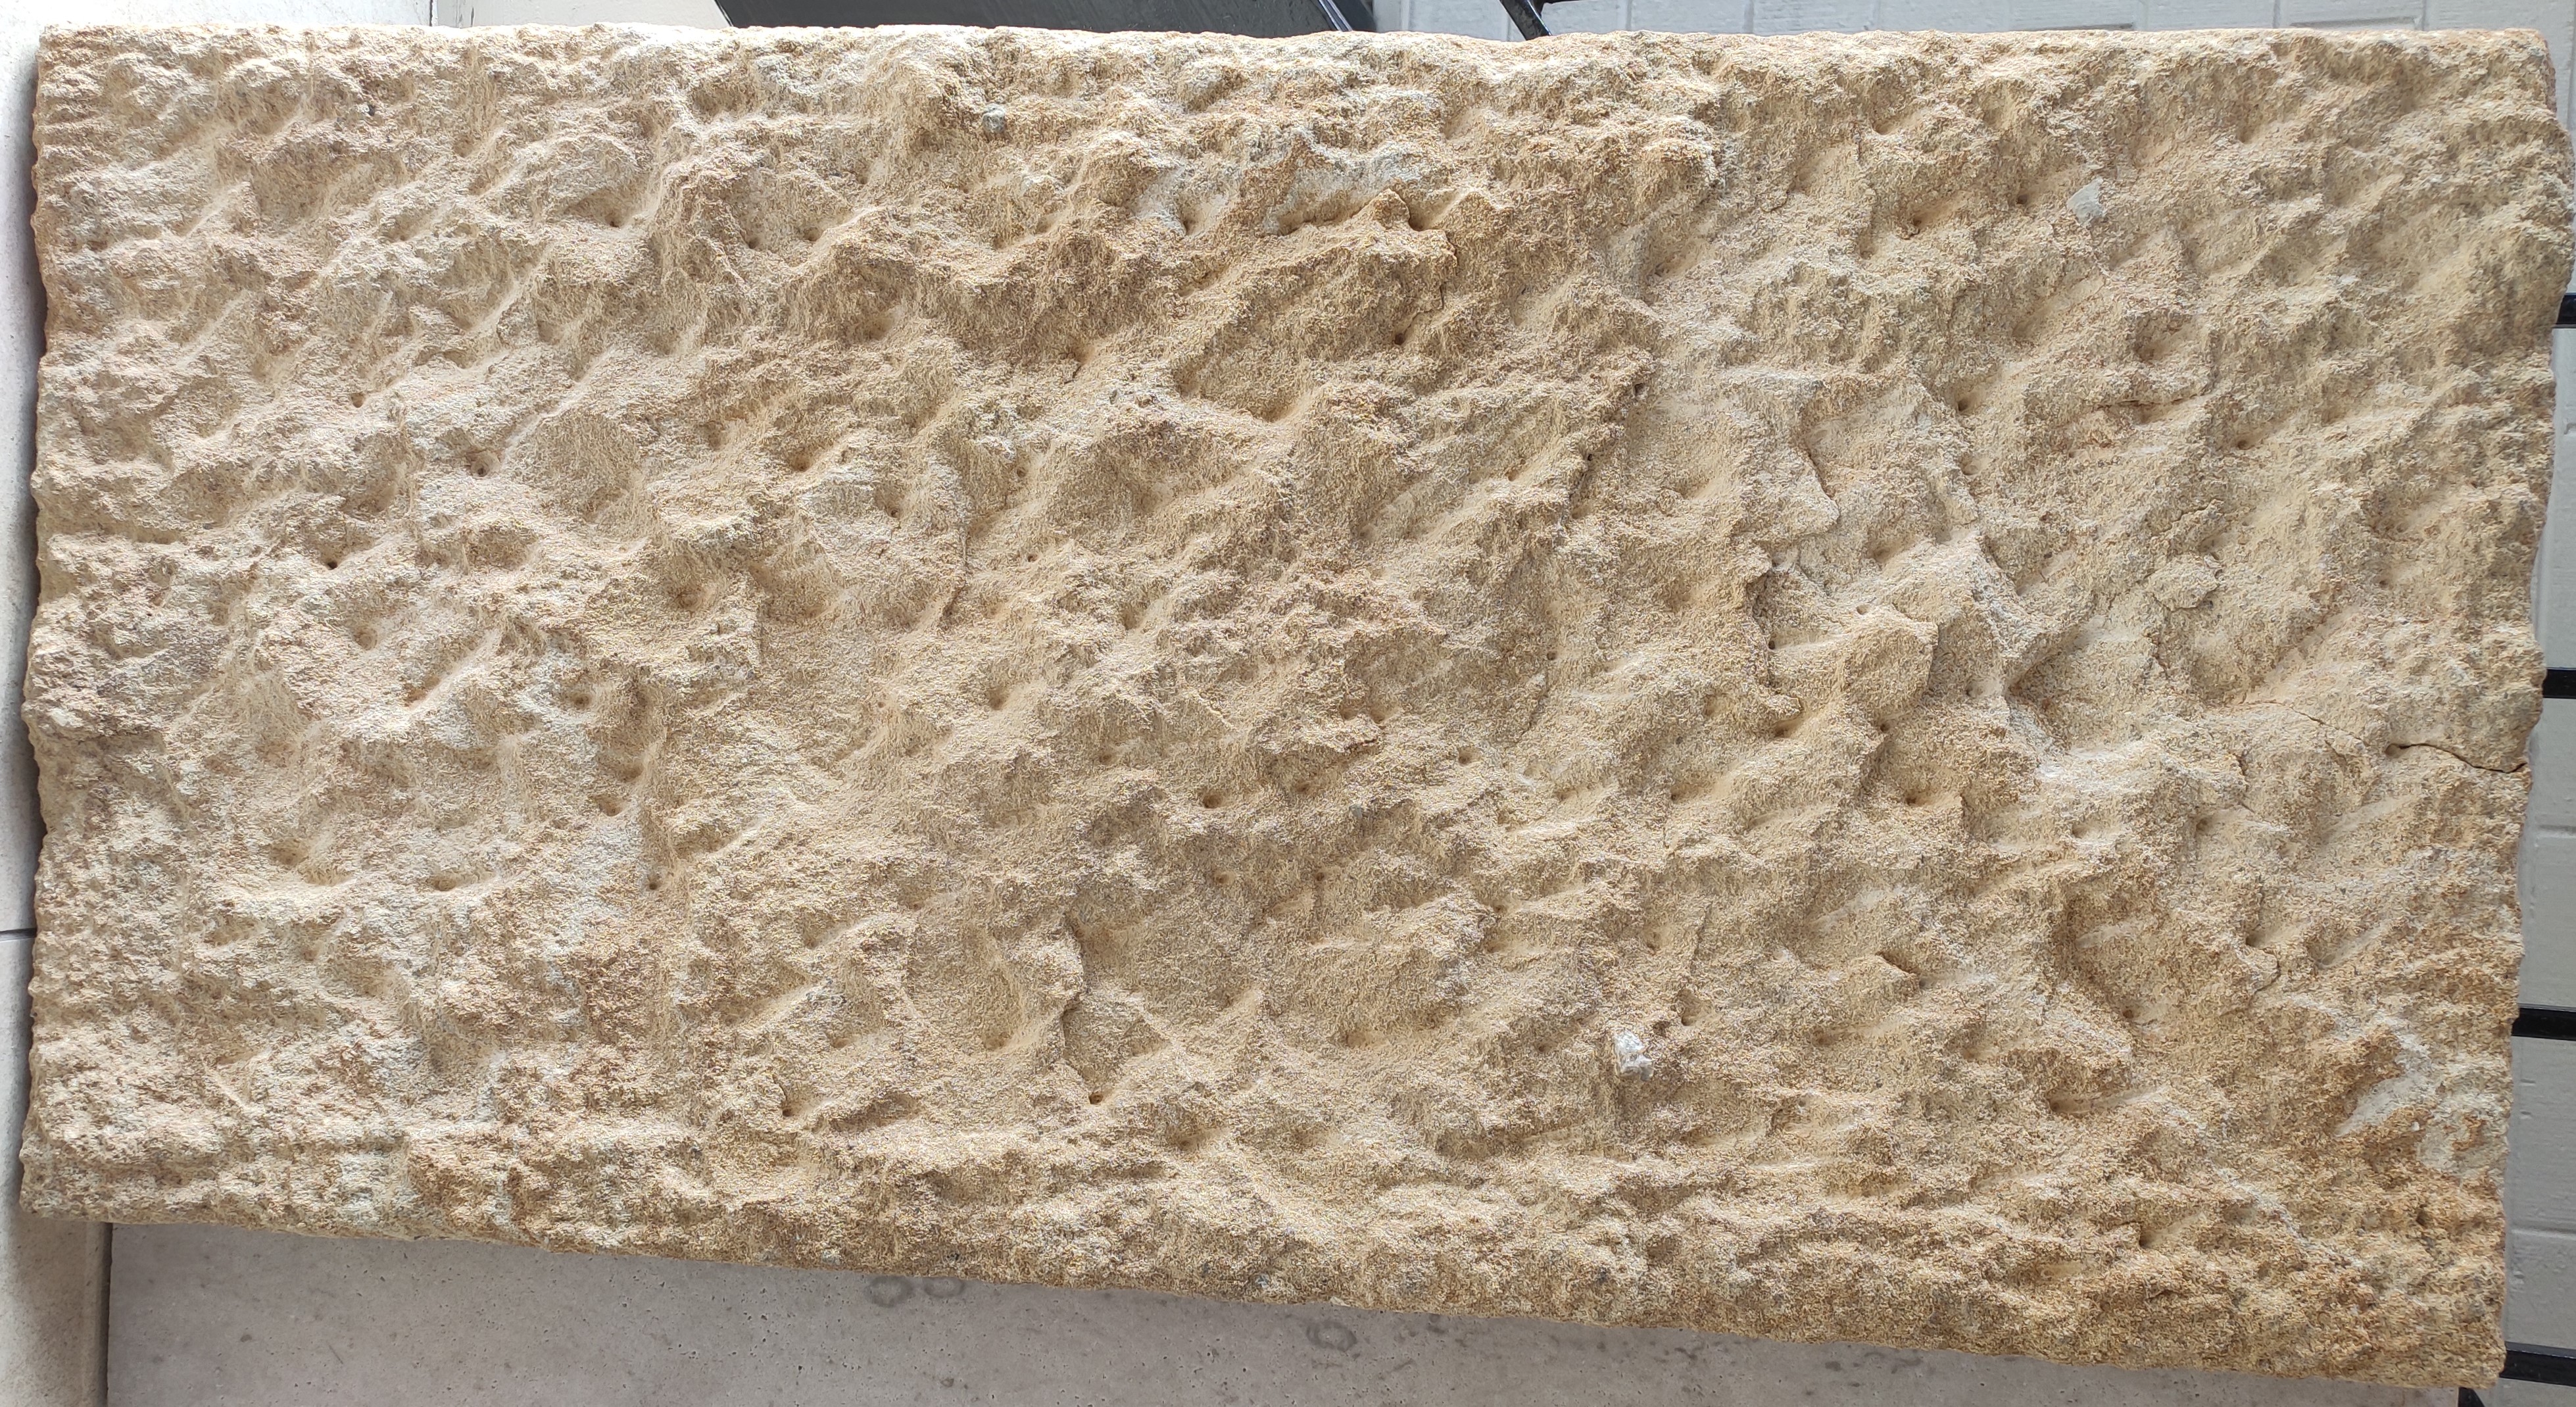 Aussietecture Clarence sandstone Walling product picture taken in Aussietecture Toowoomba factory